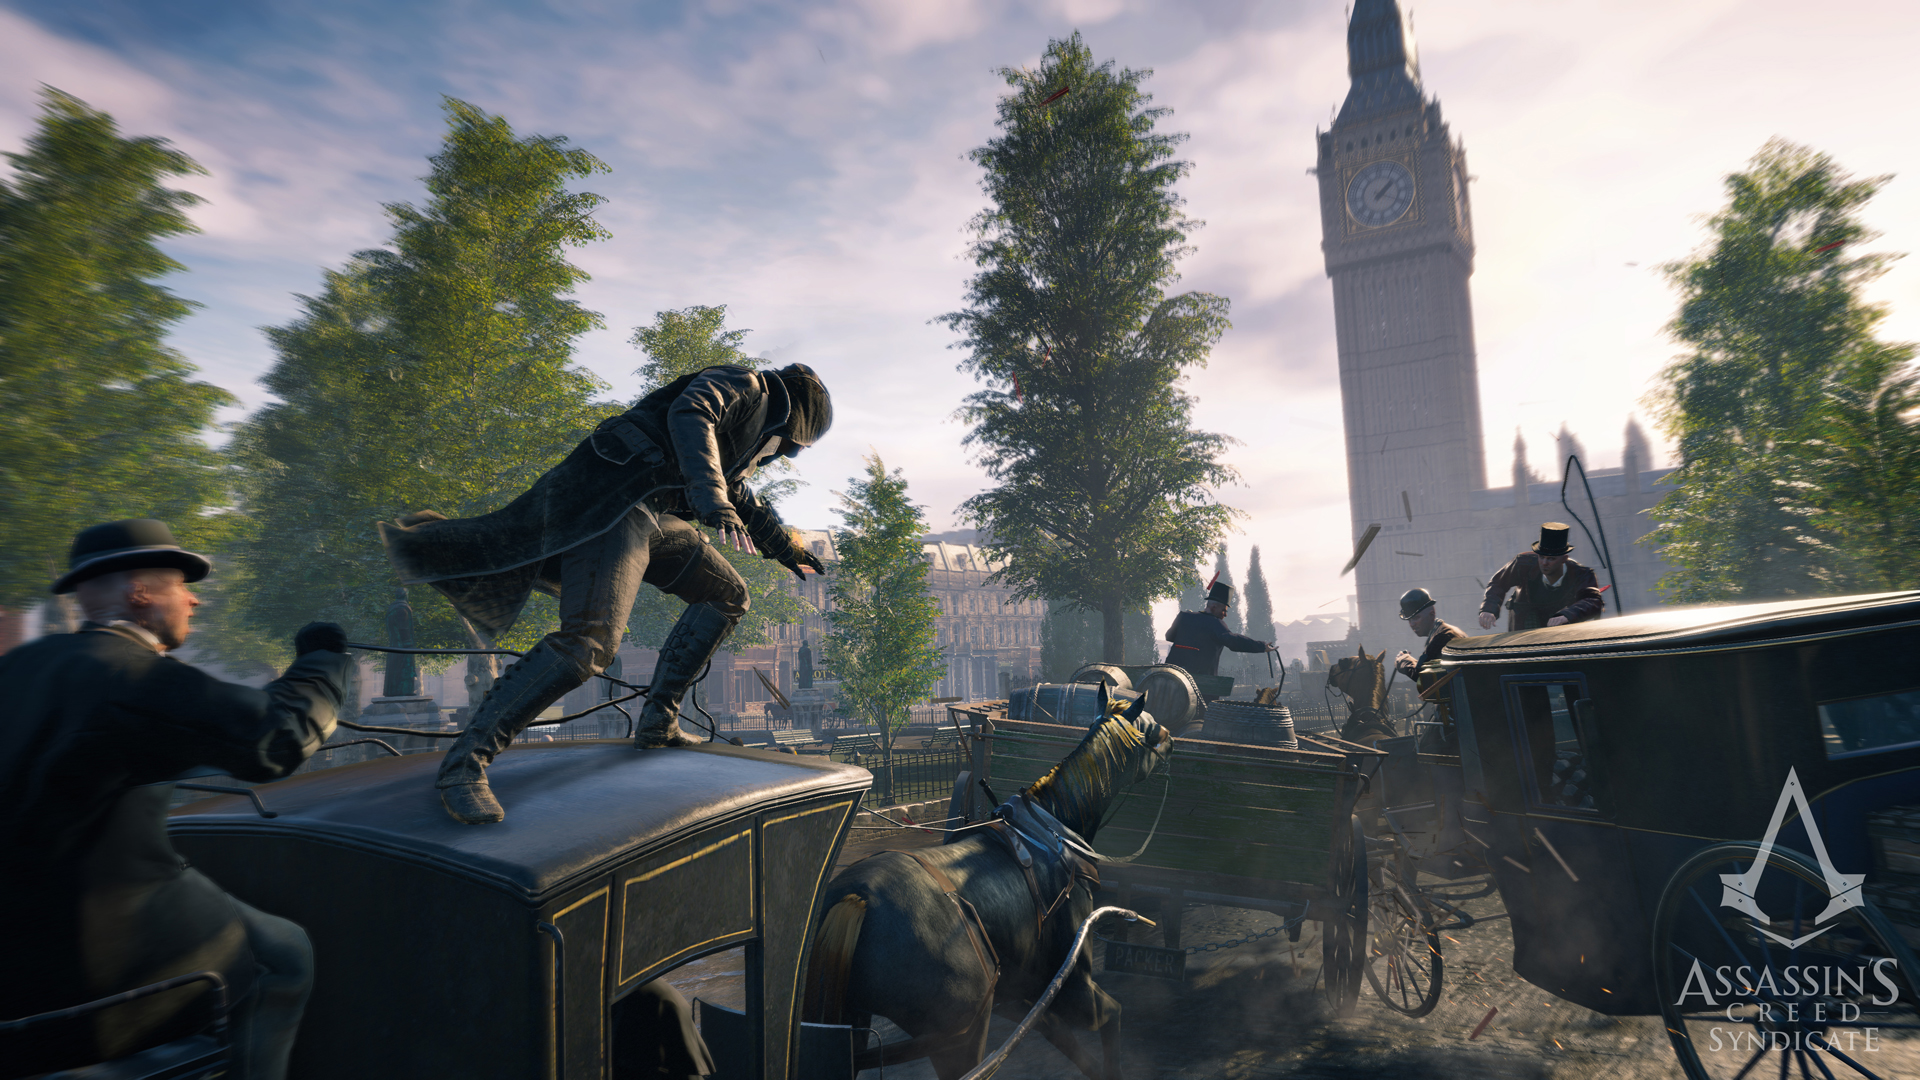 download assassin's creed syndicate gold special edition codex iso cd key steam free for pc playstation 4 ps3 xbox one 360 2017 complex latest update codex updates rar copiapop diskokosmiko